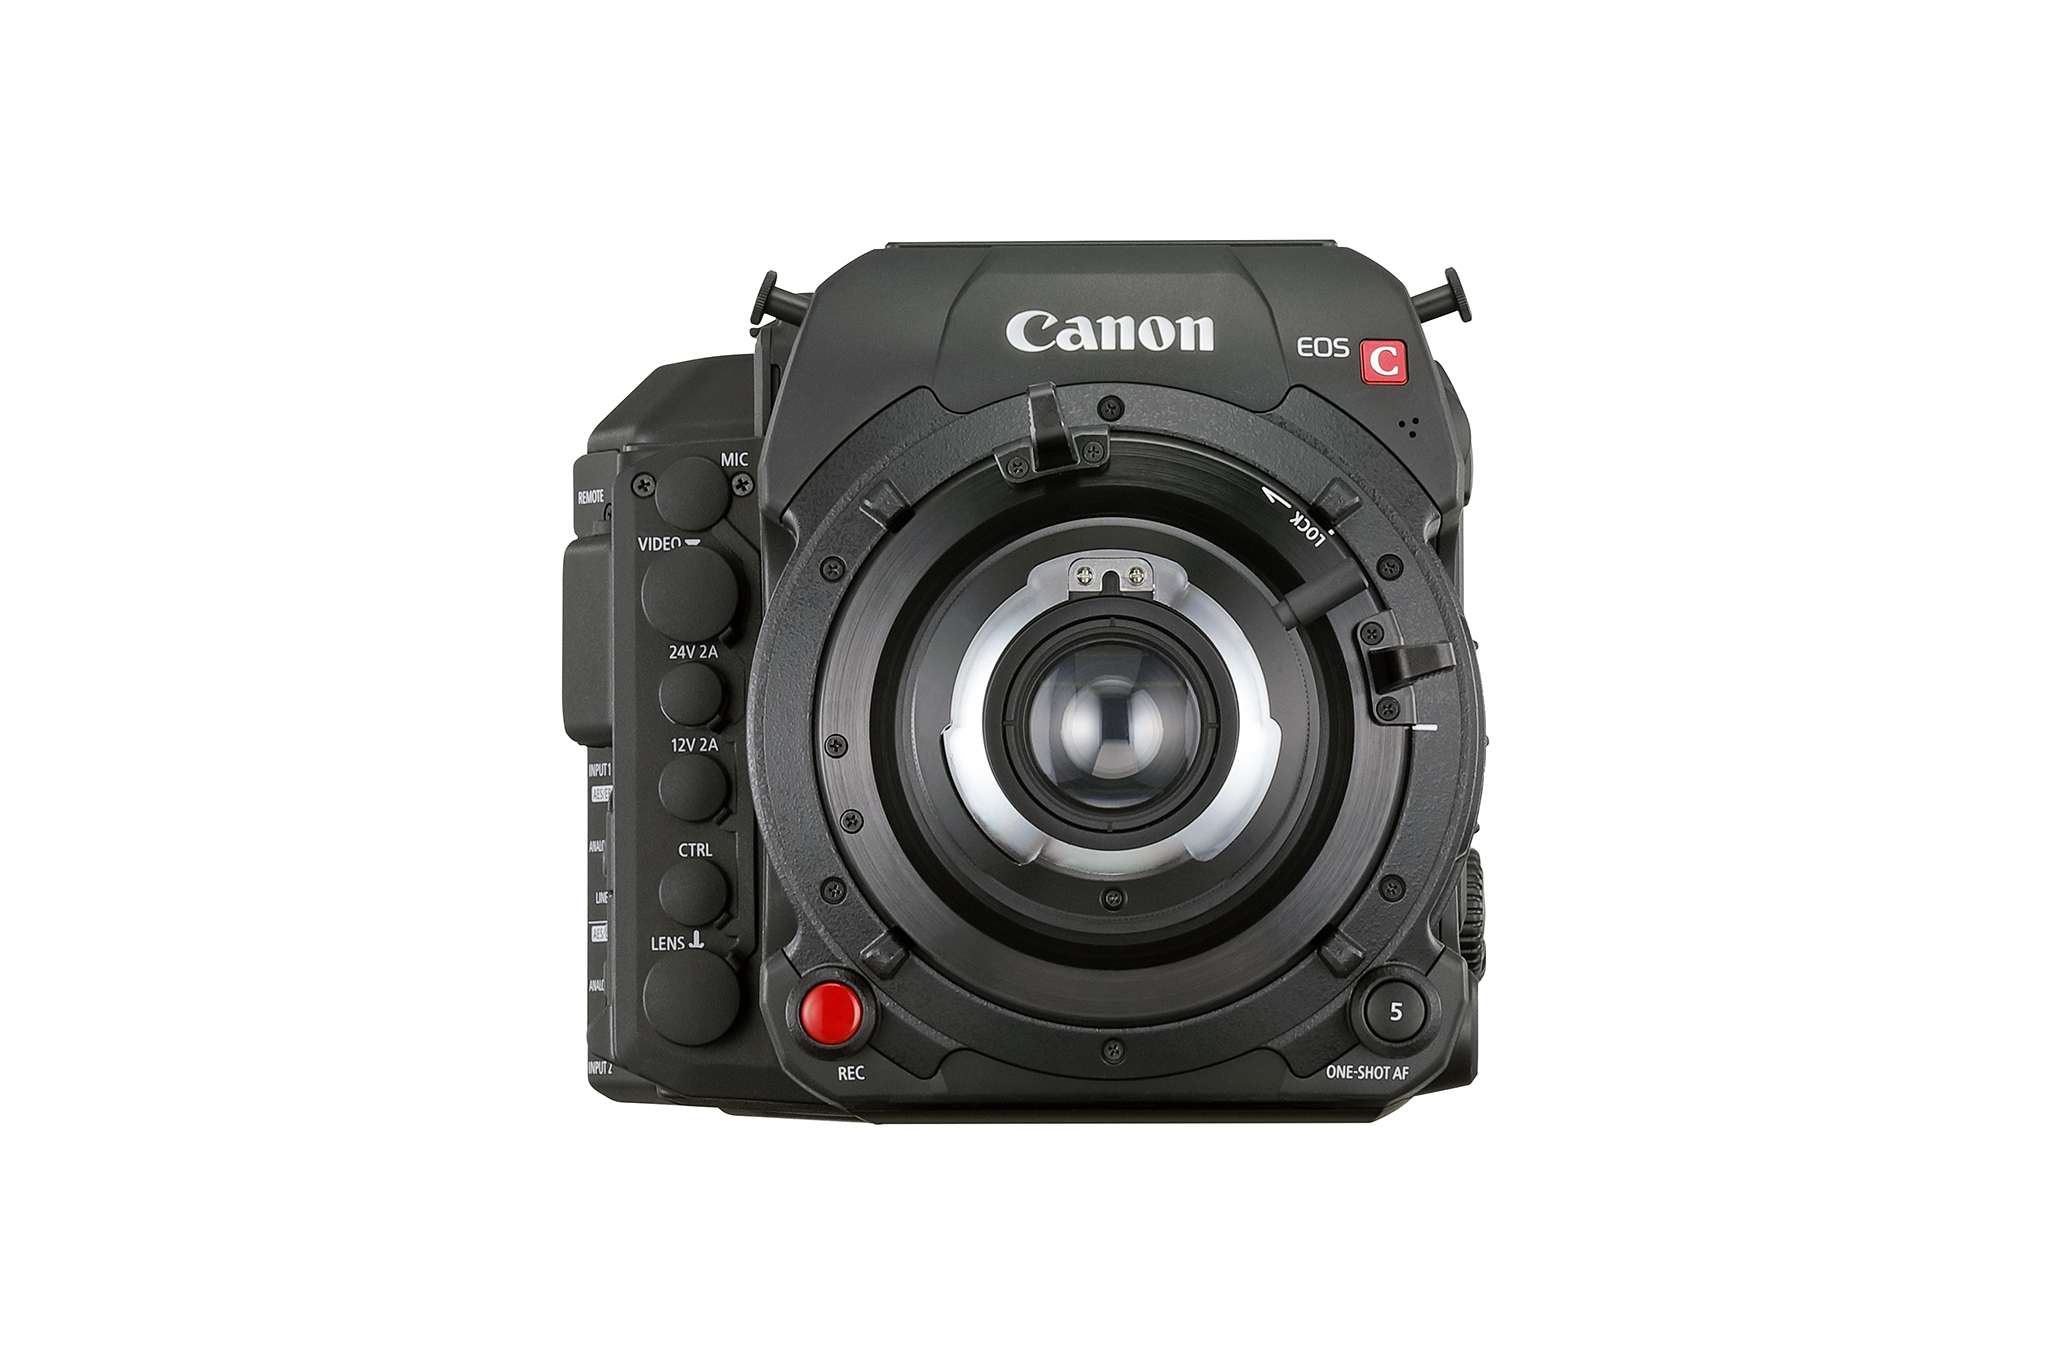 Canon C700 Possible To Expand Full Frame 1824 S35 And Other Camera Lens Circuit Board Digital Photography Concept D174 Front 04 B4